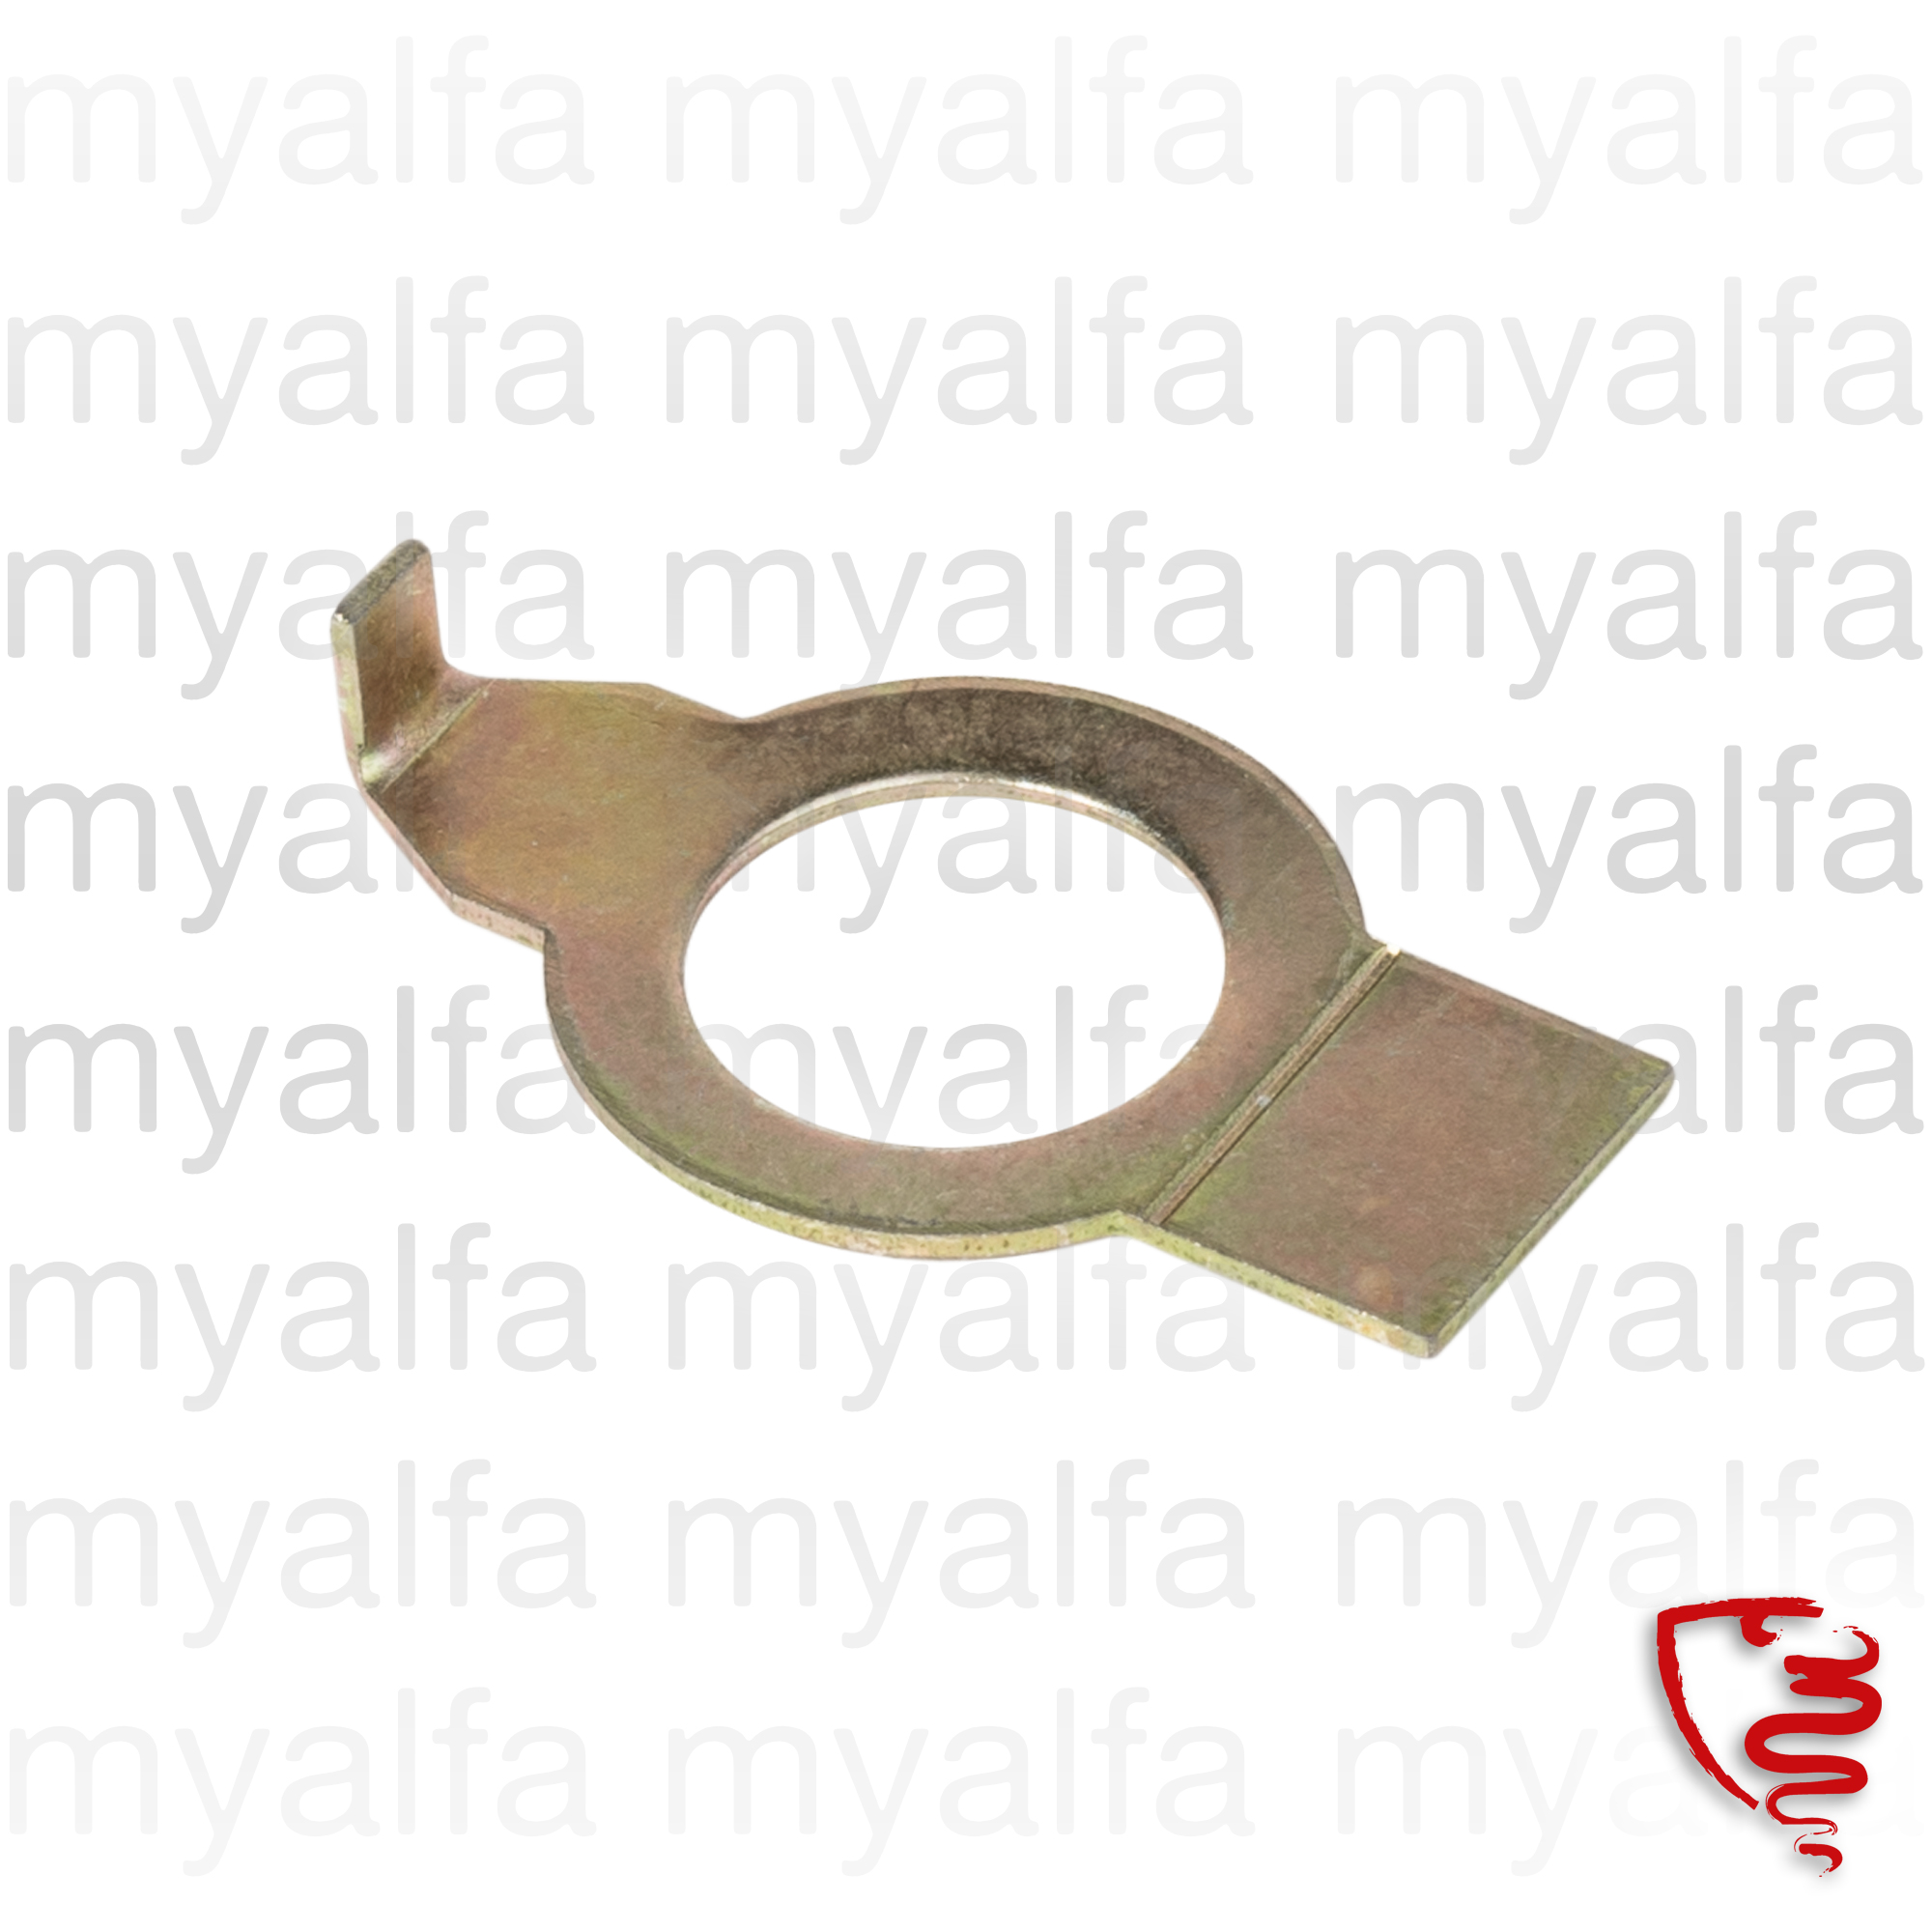 Brakes trees cams for 105/115, Engine, Cylinder head, Timing / Camshafts